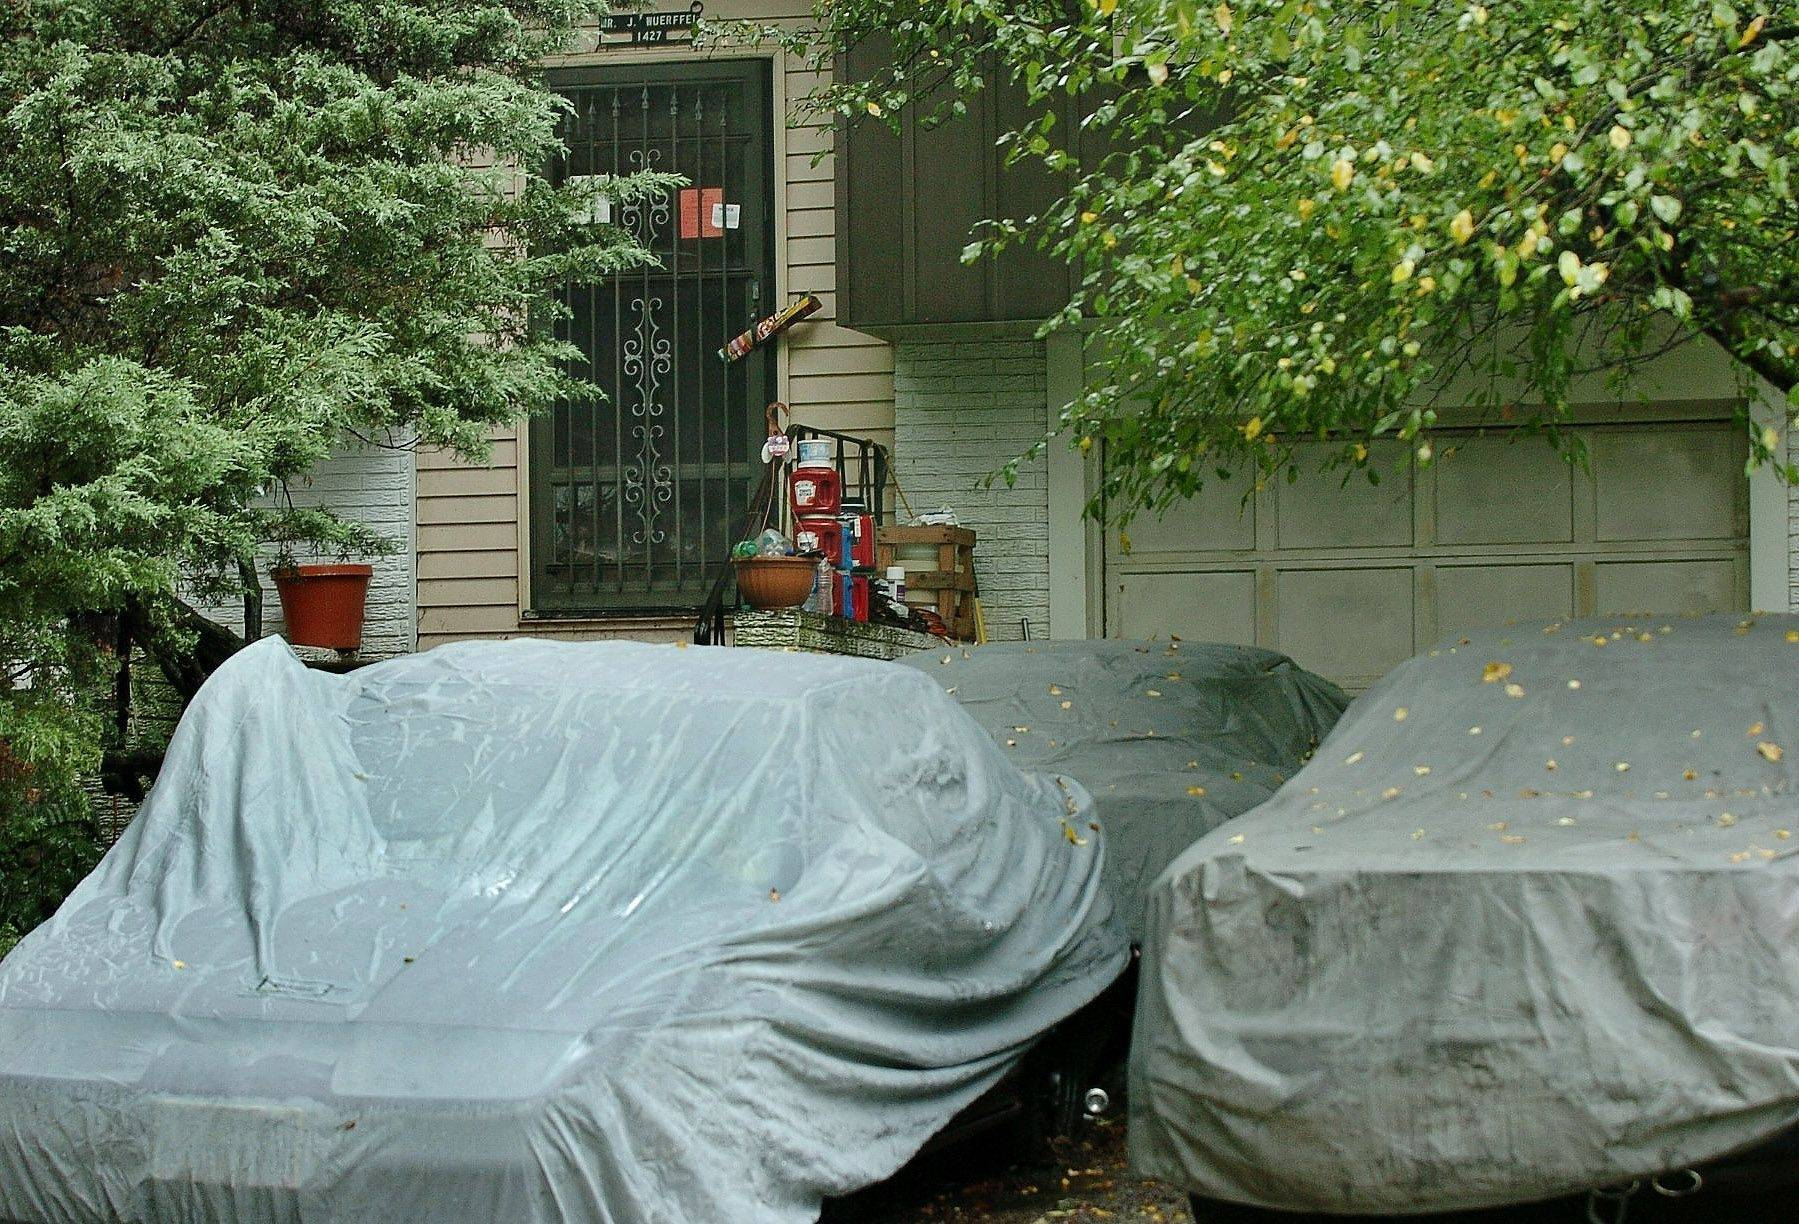 Broken cars towed from cluttered Schaumburg home